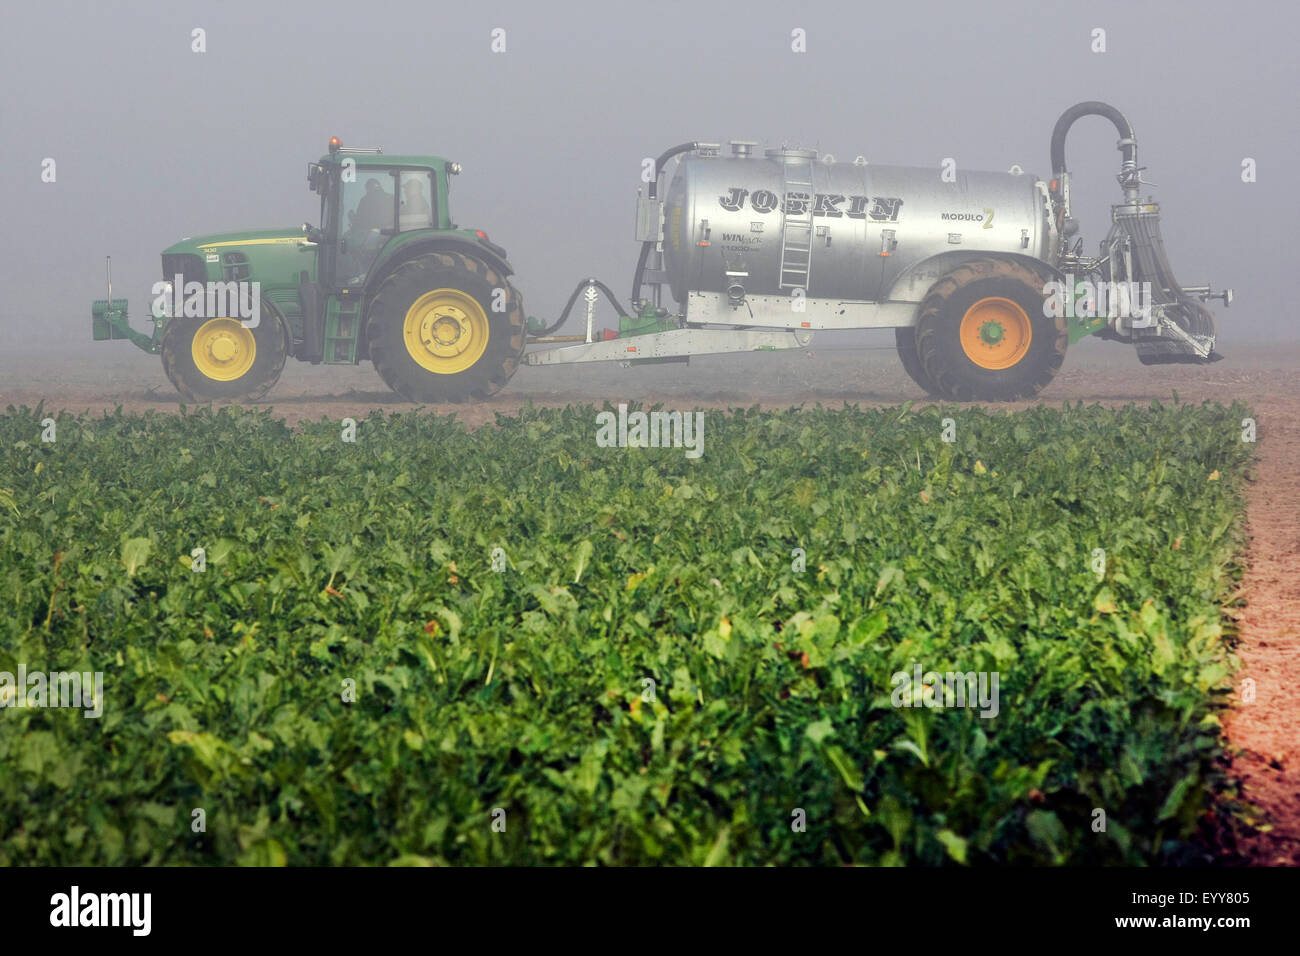 tractor spreading liquid manure on a field, Belgium - Stock Image